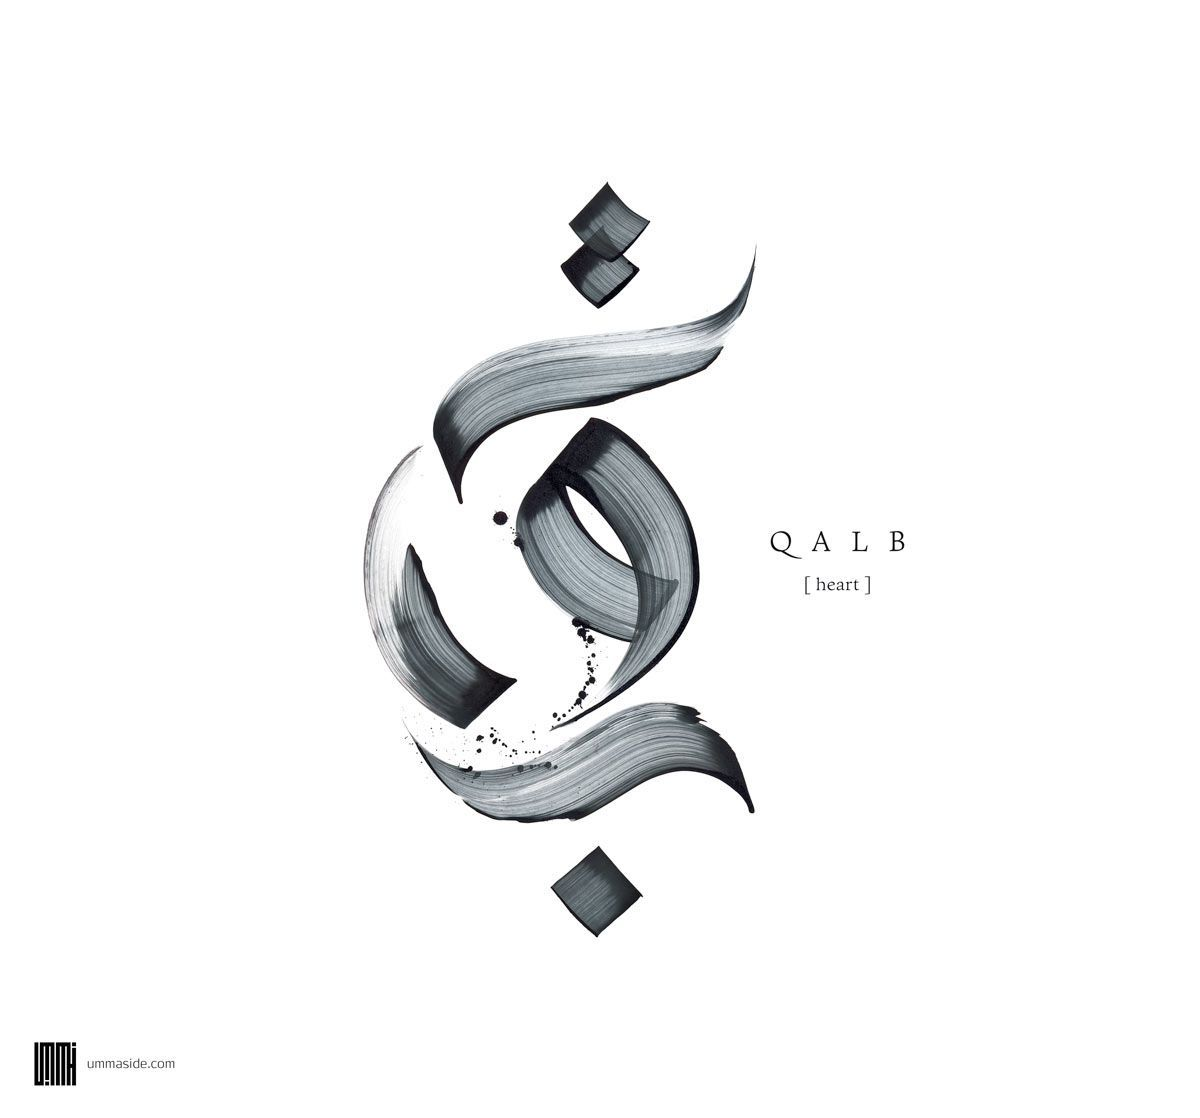 Arabic Calligraphy Tattoo Meanings Related Image Think Ink Tattoos Calligraphy Tattoo Arabic